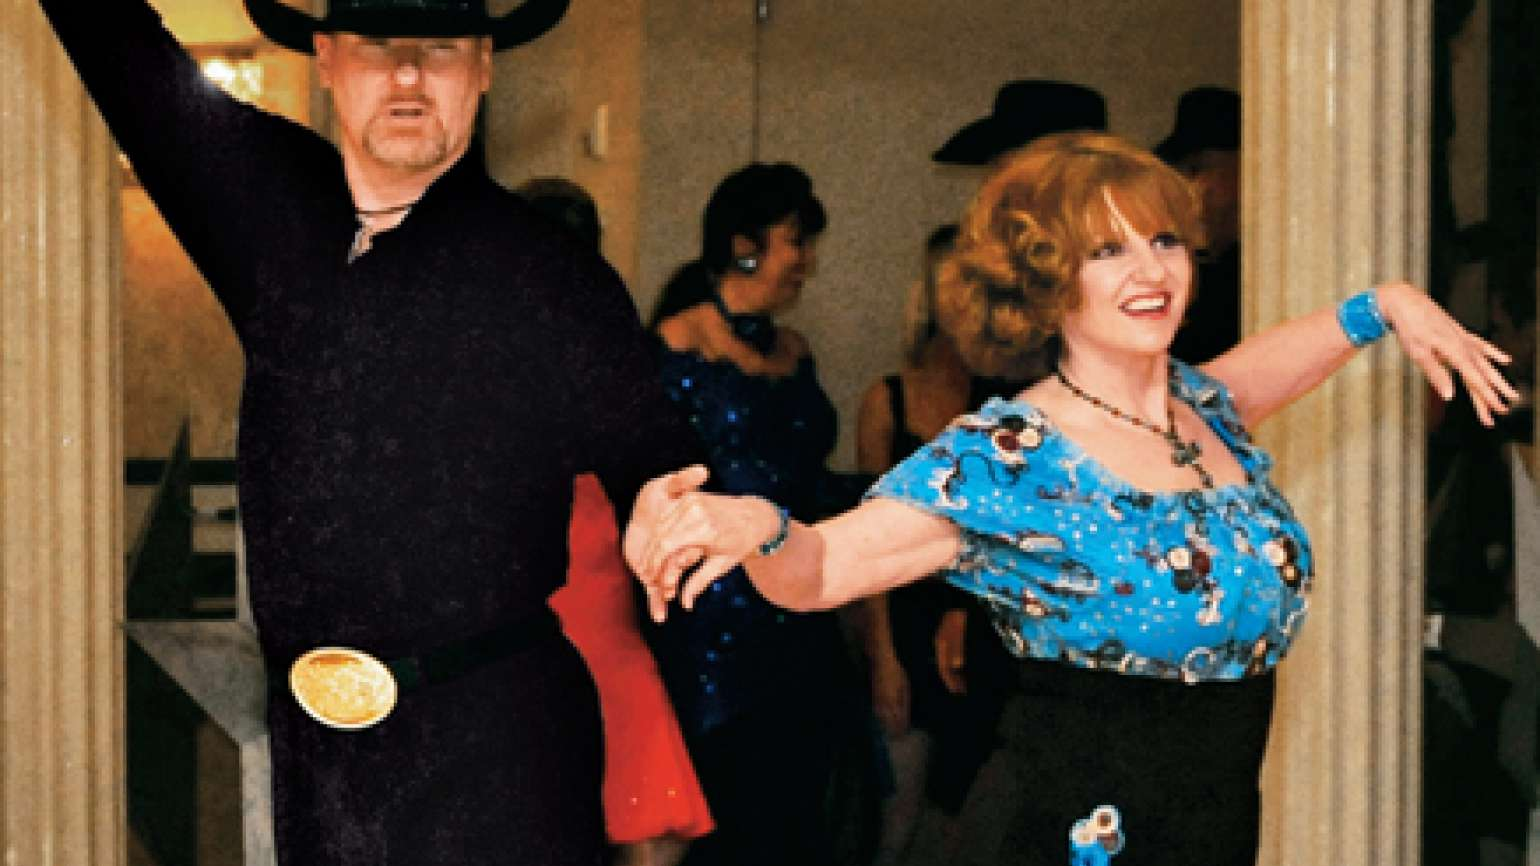 Merry Keller and her dance partner, Bob Clanton, keep in sync.